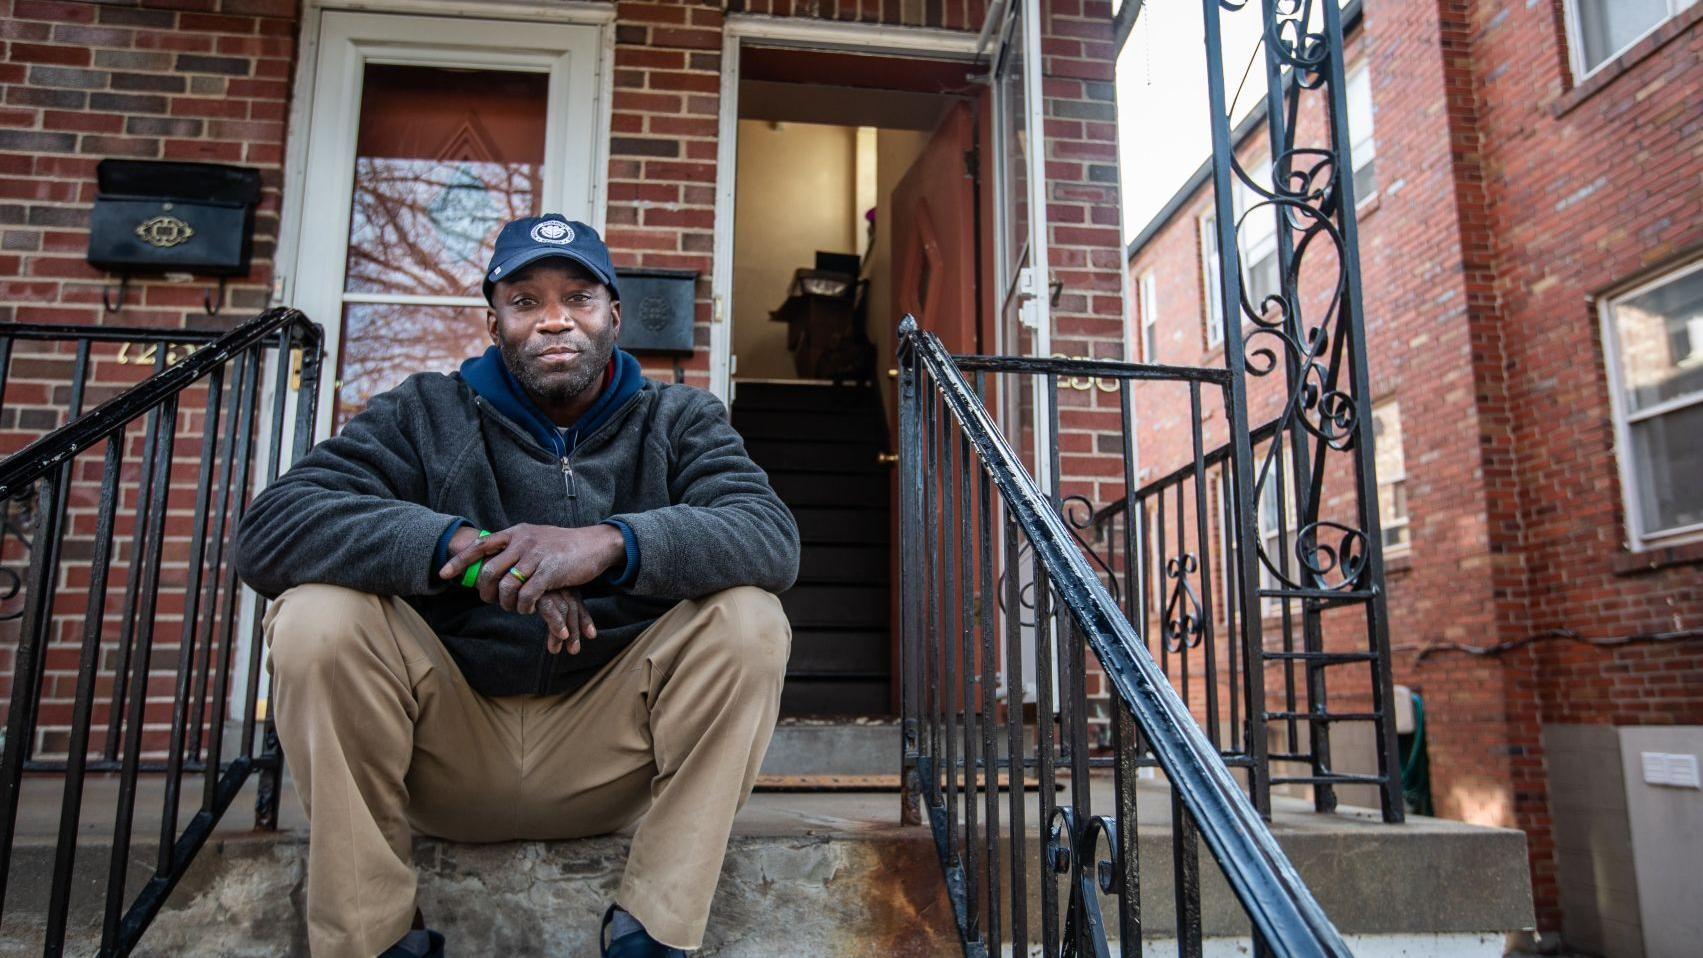 Thousands of evictions loom in St. Louis. 'Worst thing we've ever seen'